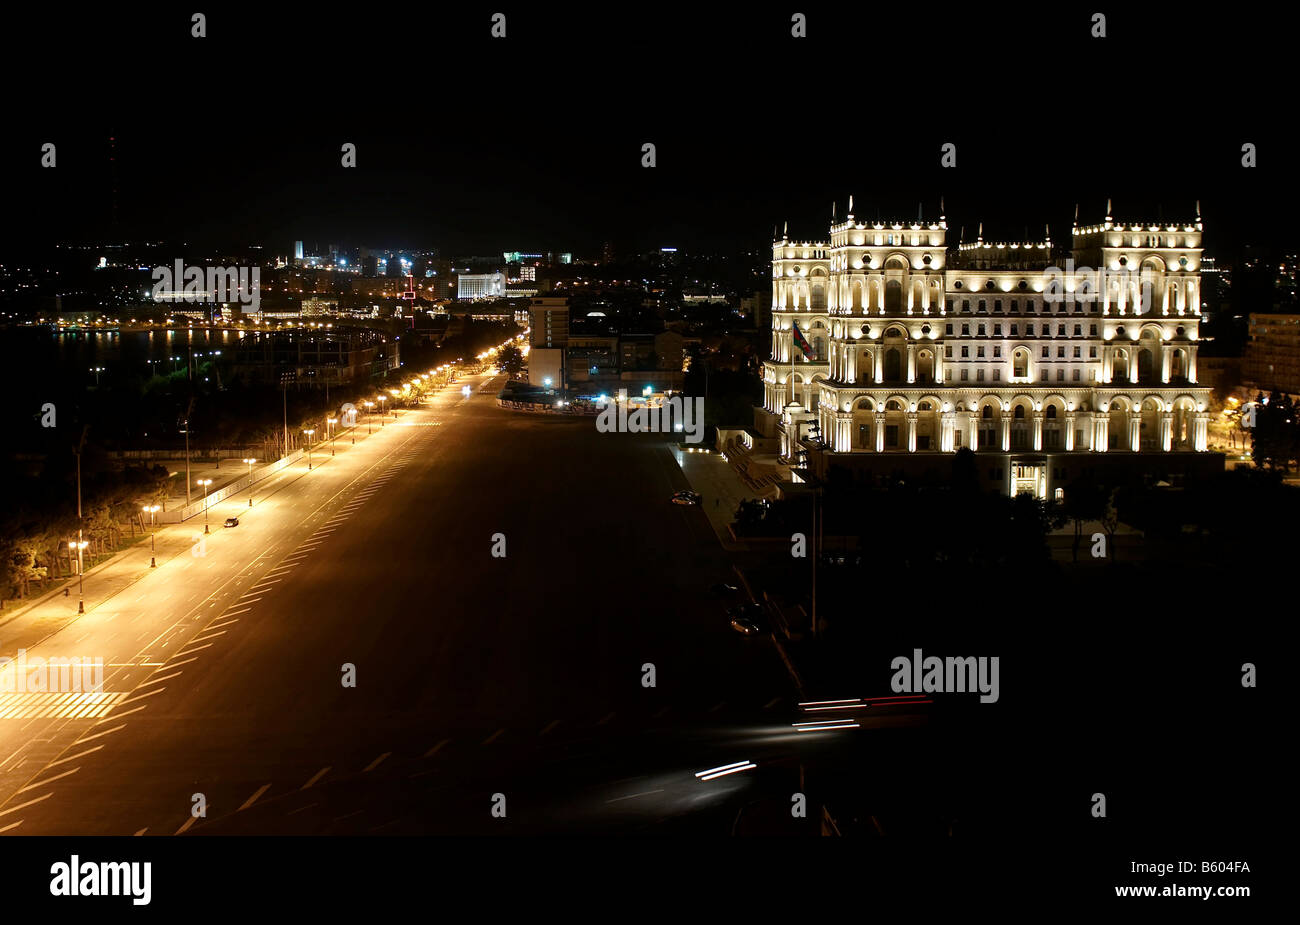 Government s house at freedom square. Baku, Azerbaijan. - Stock Image